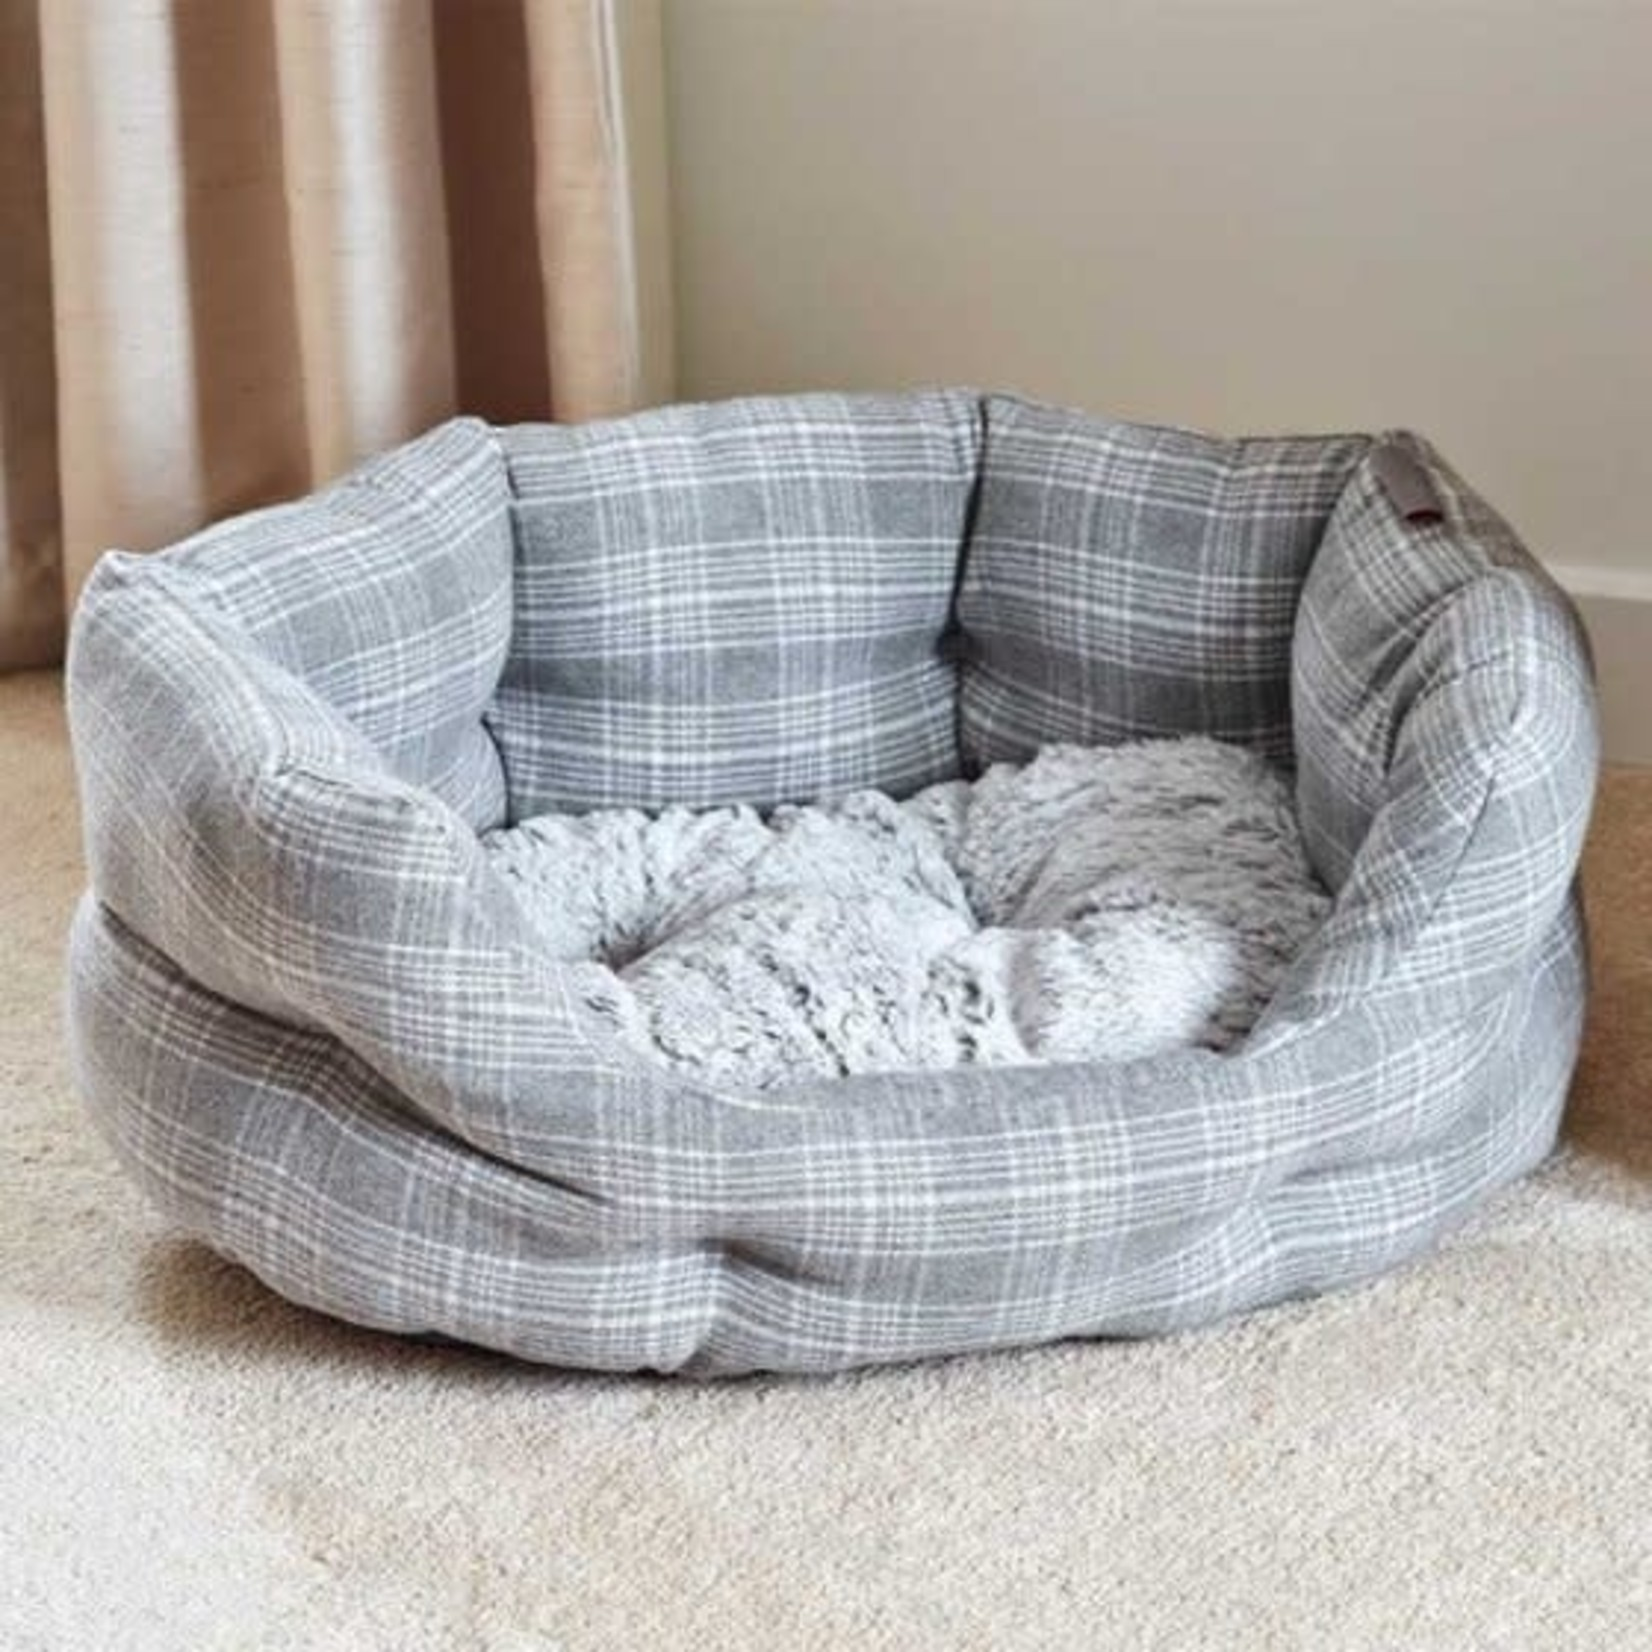 Zoon GREY PLAID M OVAL BED